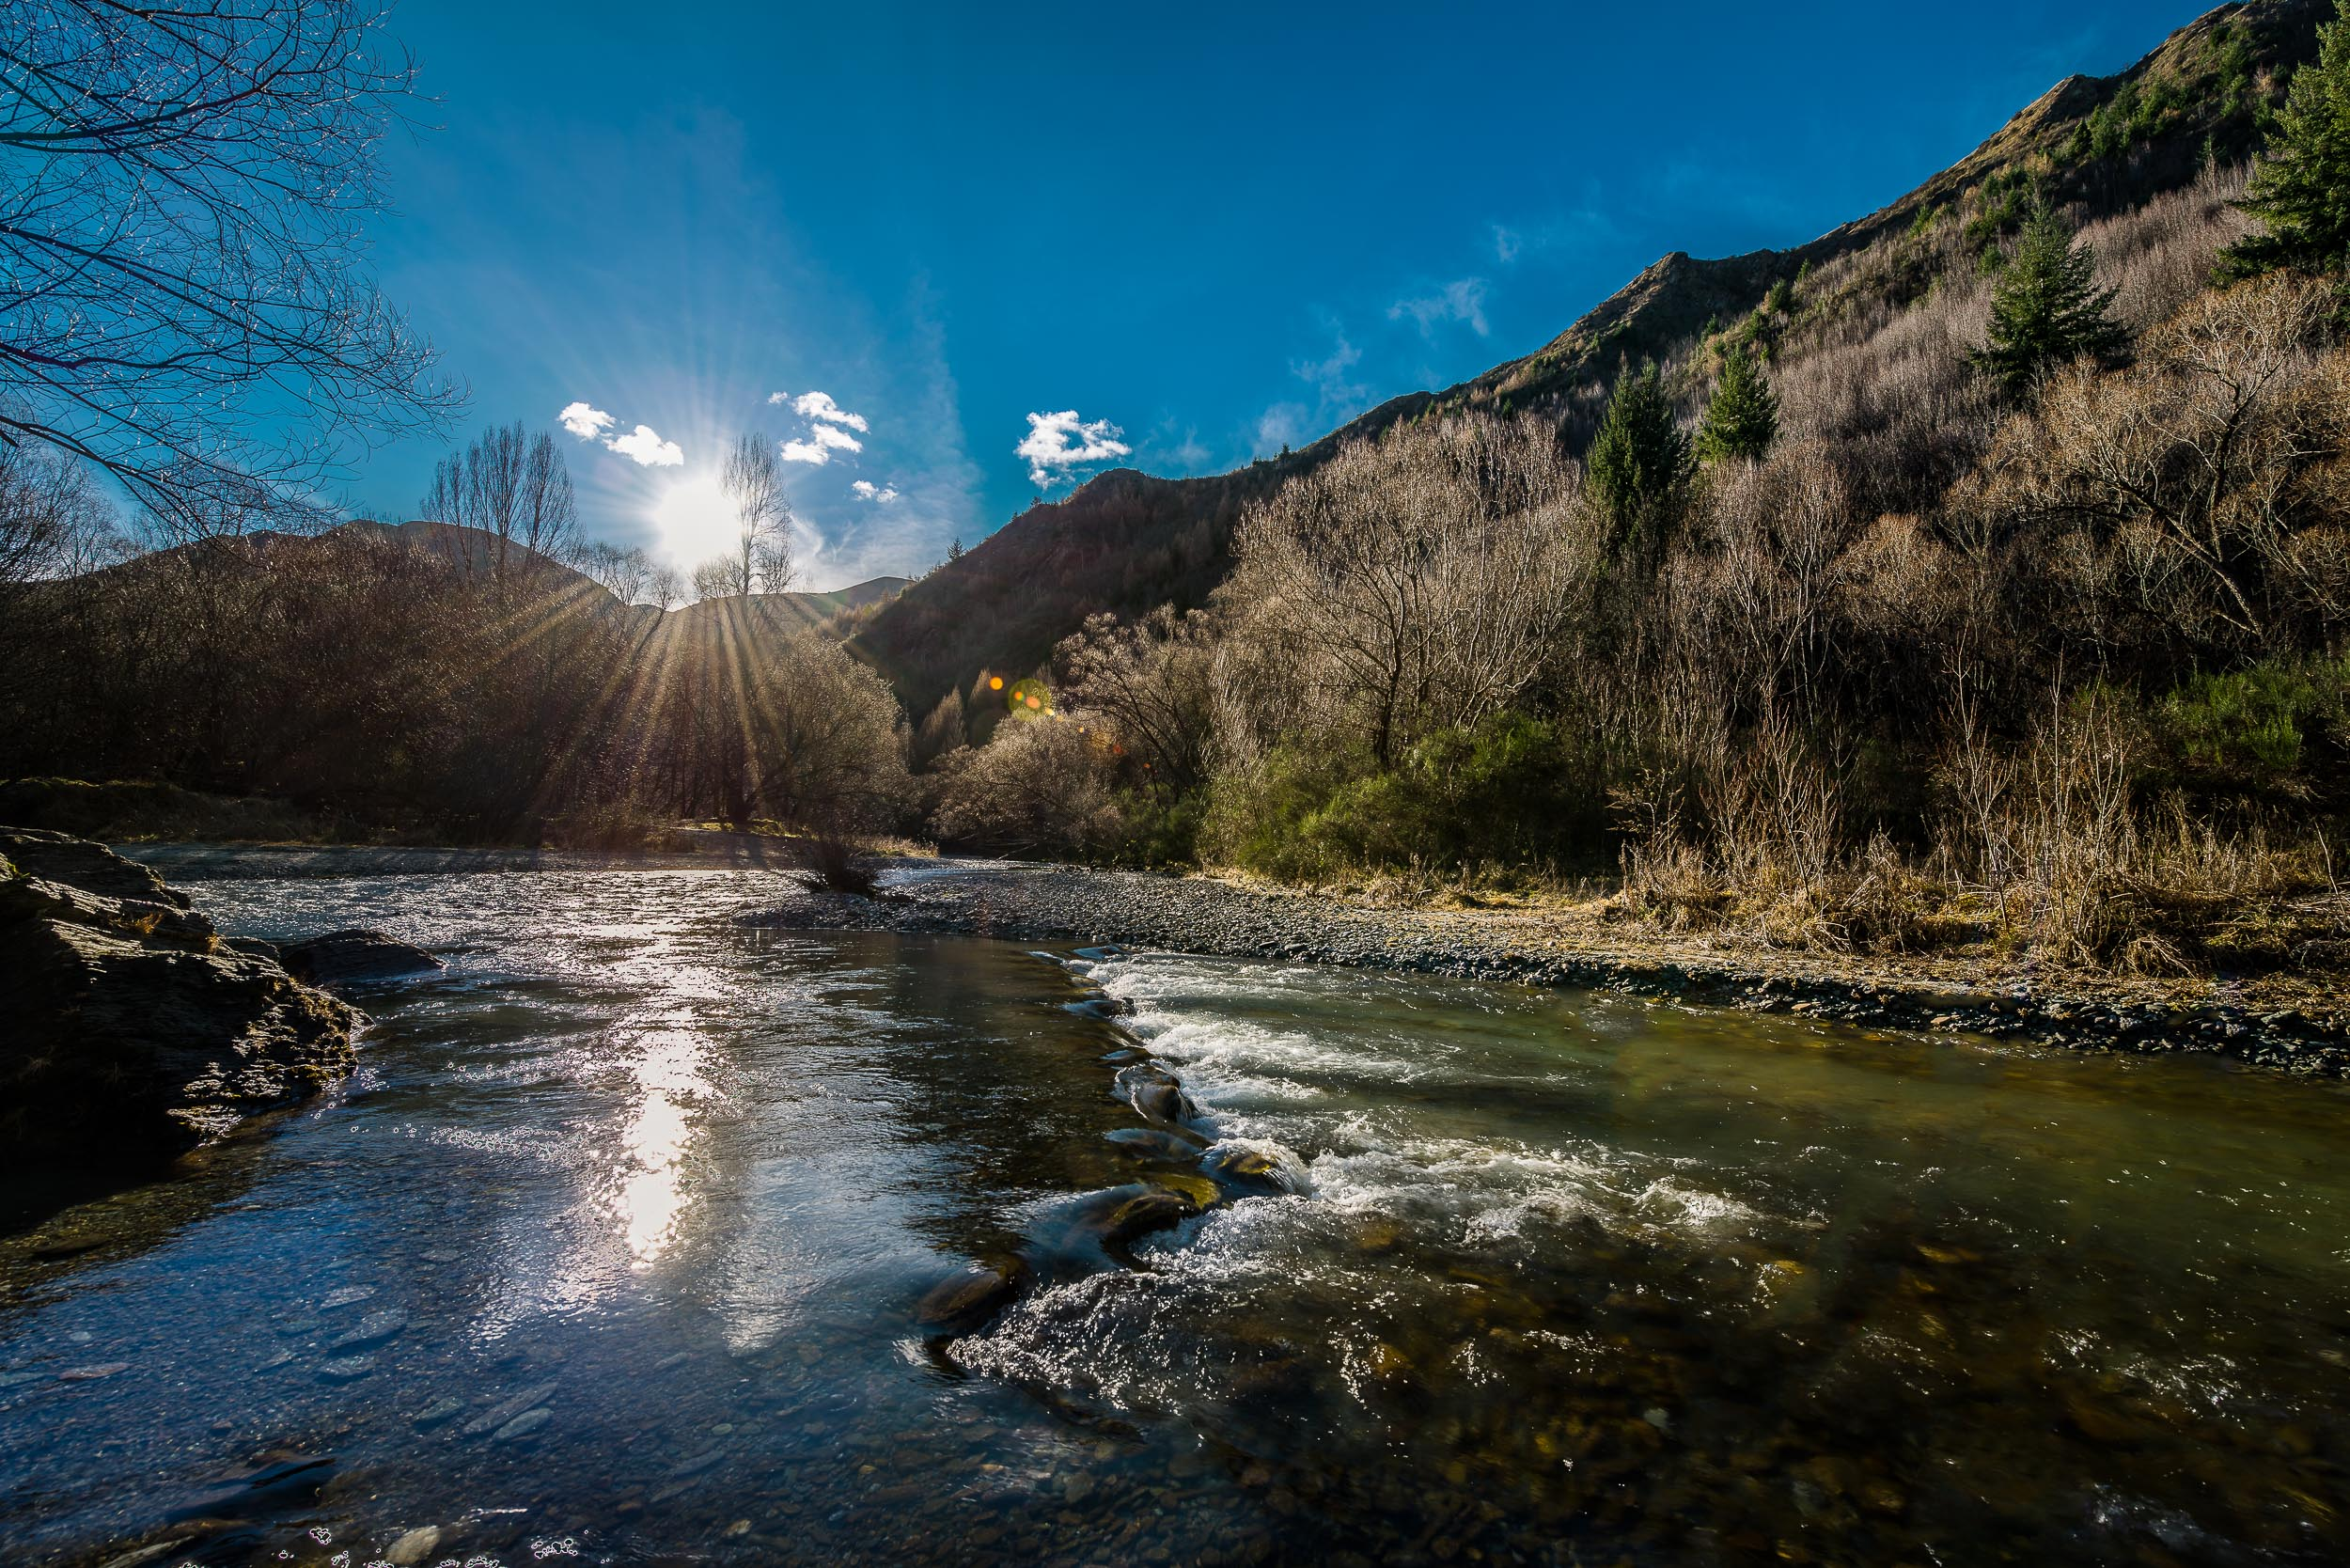 A view of the picturesque    Arrow River    on a    winter's day    in    Arrowtown    on the South Island of    New Zealand   .